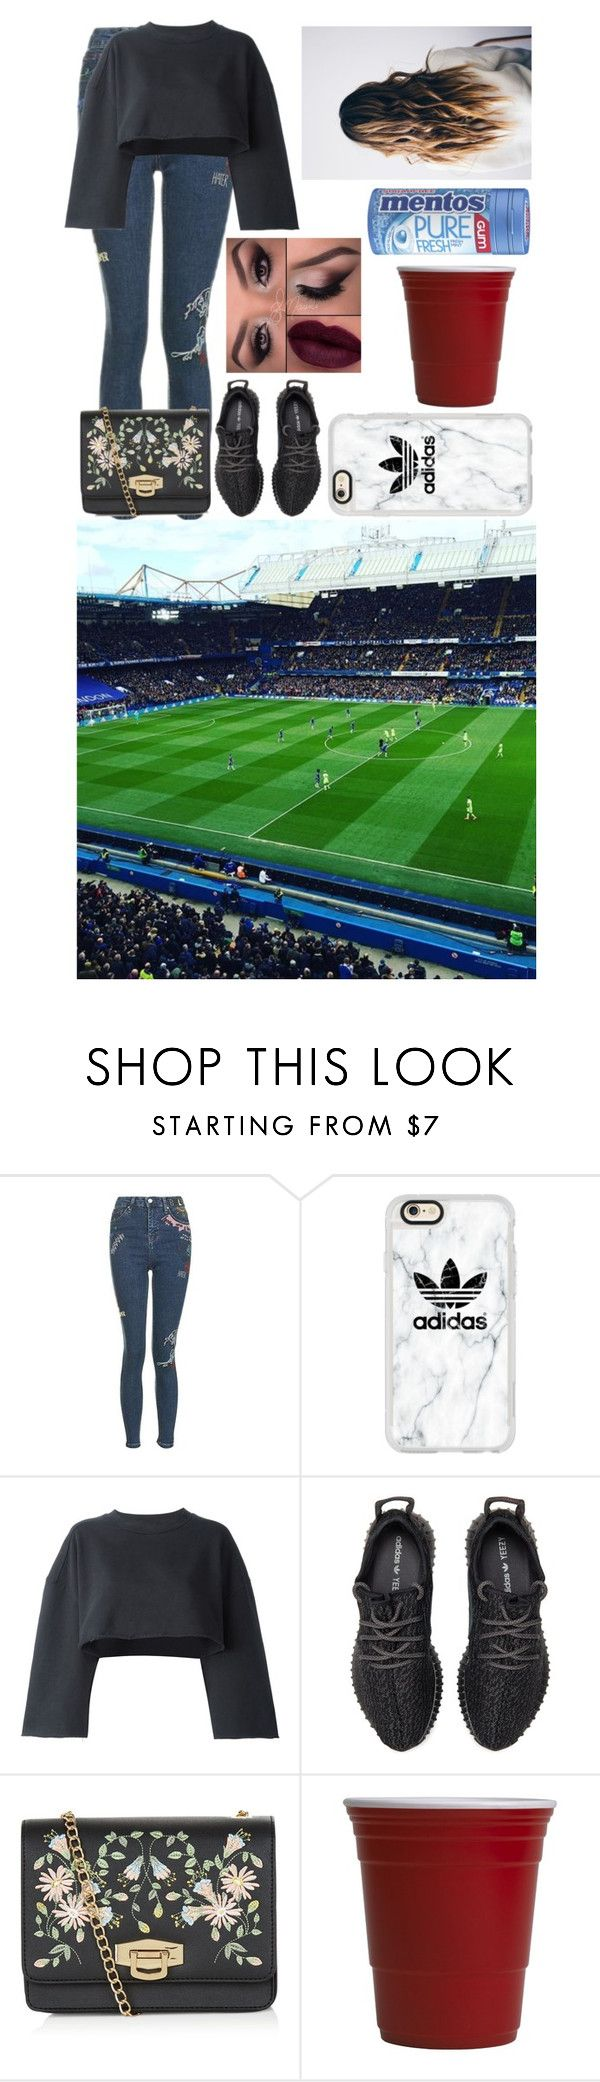 """""""Going To A Football Match With The Sidemen"""" by glitterbelle11 ❤ liked on Polyvore featuring Topshop, Casetify, adidas Originals, adidas, New Look and Red Cup Living"""